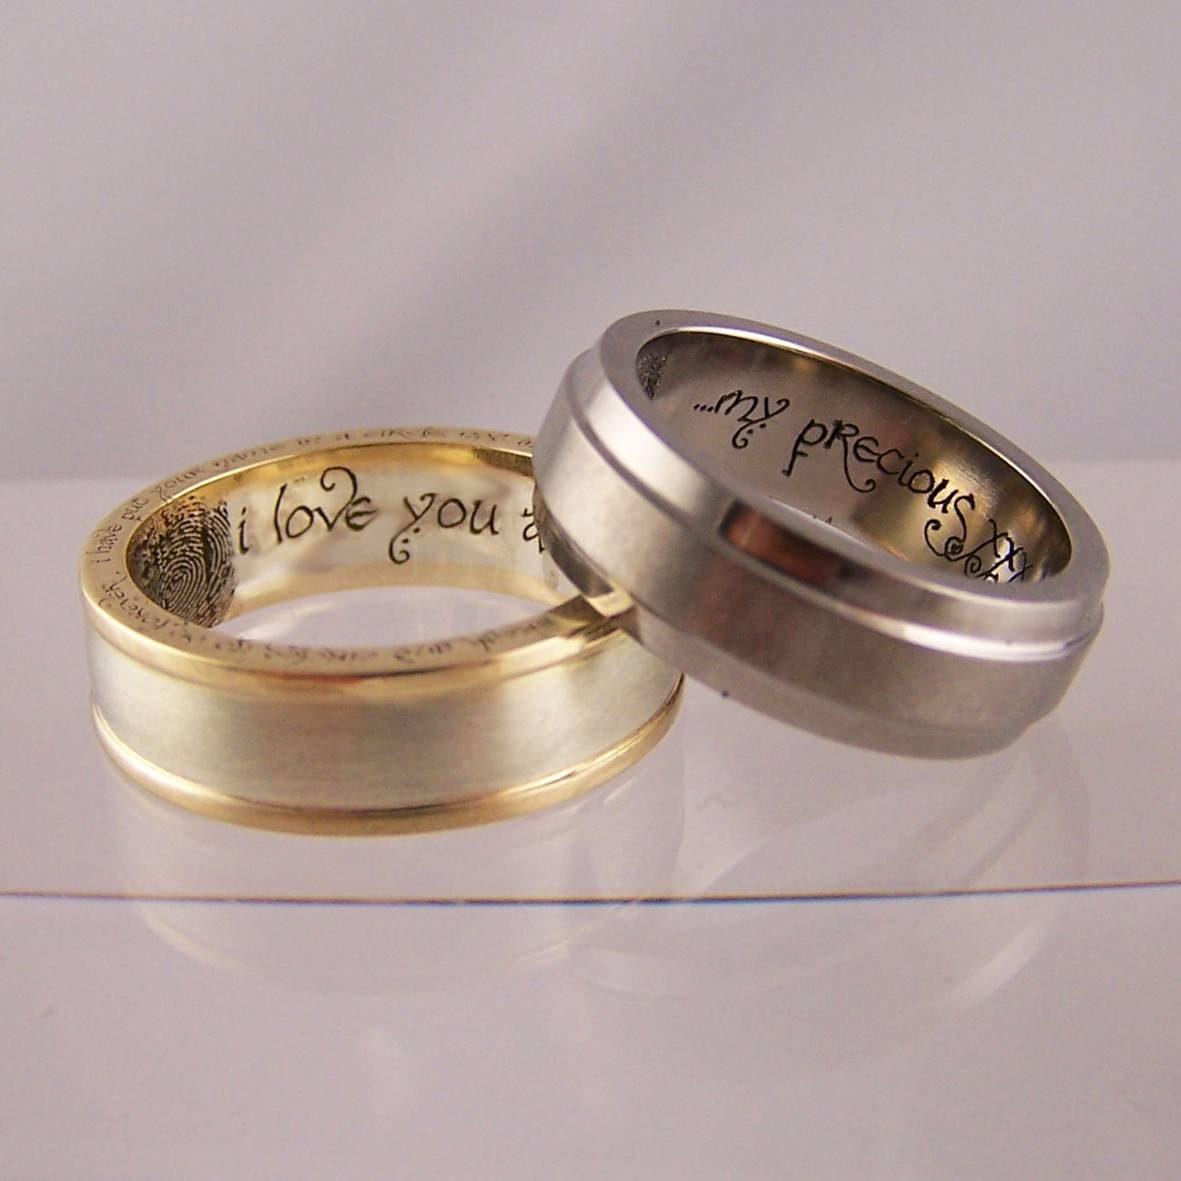 Geek Chic Wedding Rings & Other Jewellery – Ring Jewellery Regarding Lord Of The Rings Wedding Bands (View 5 of 15)